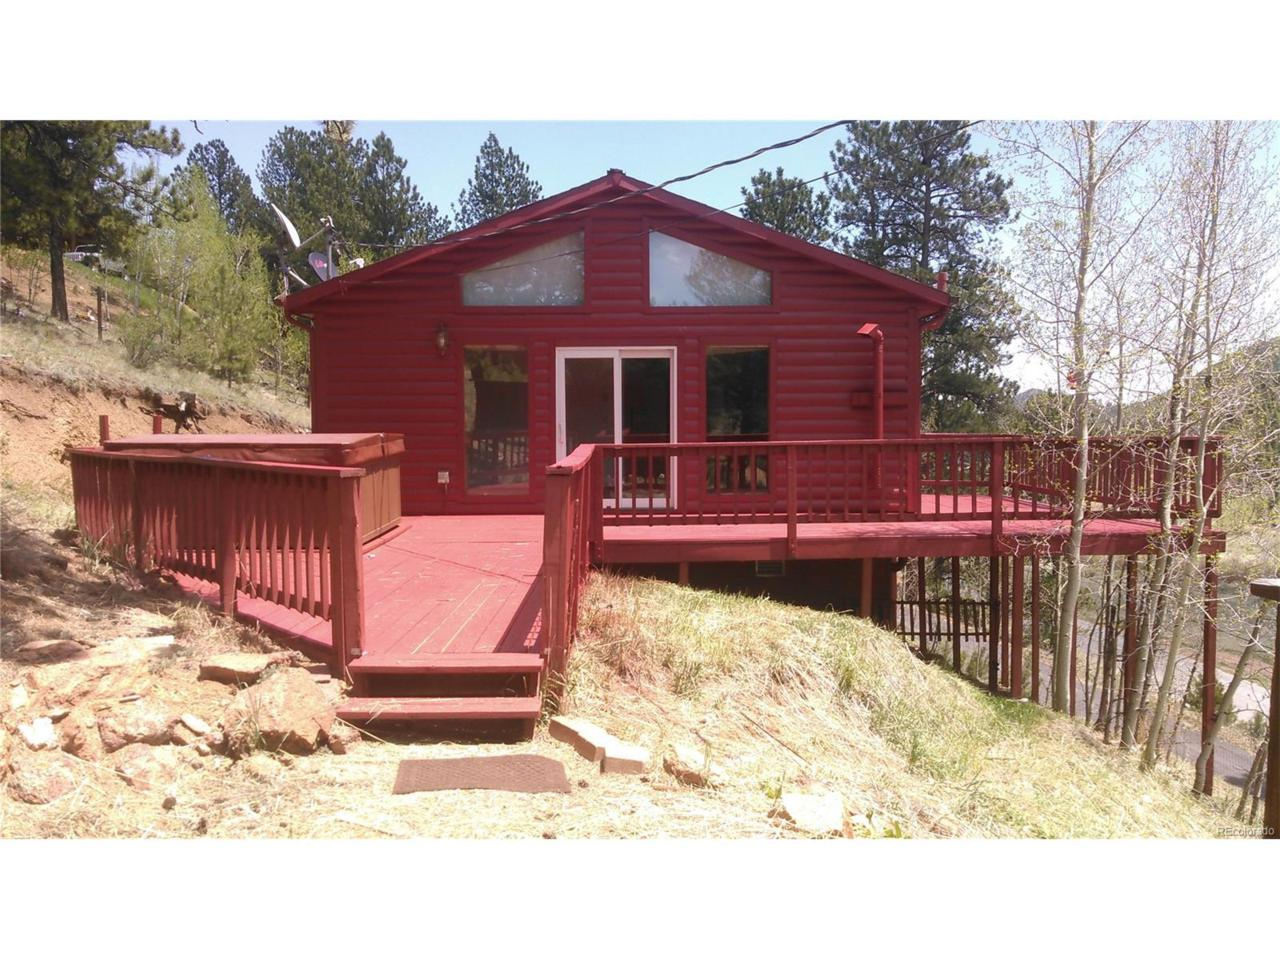 229 Wilkins Road, Bailey, CO 80421 (MLS #3503464) :: 8z Real Estate